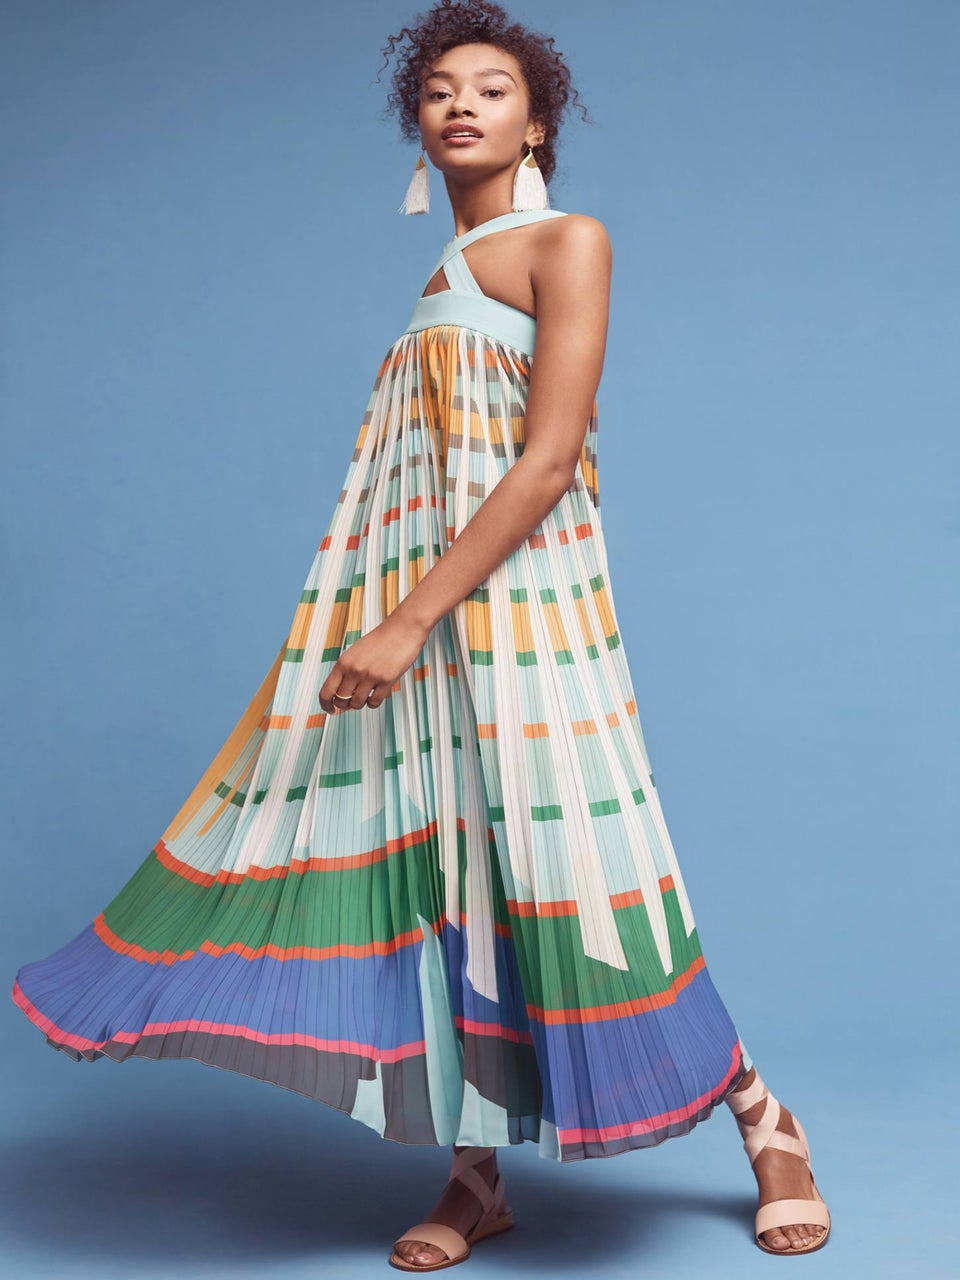 The 11 Dresses We Have Our Eye On Now That Spring is On Its Way